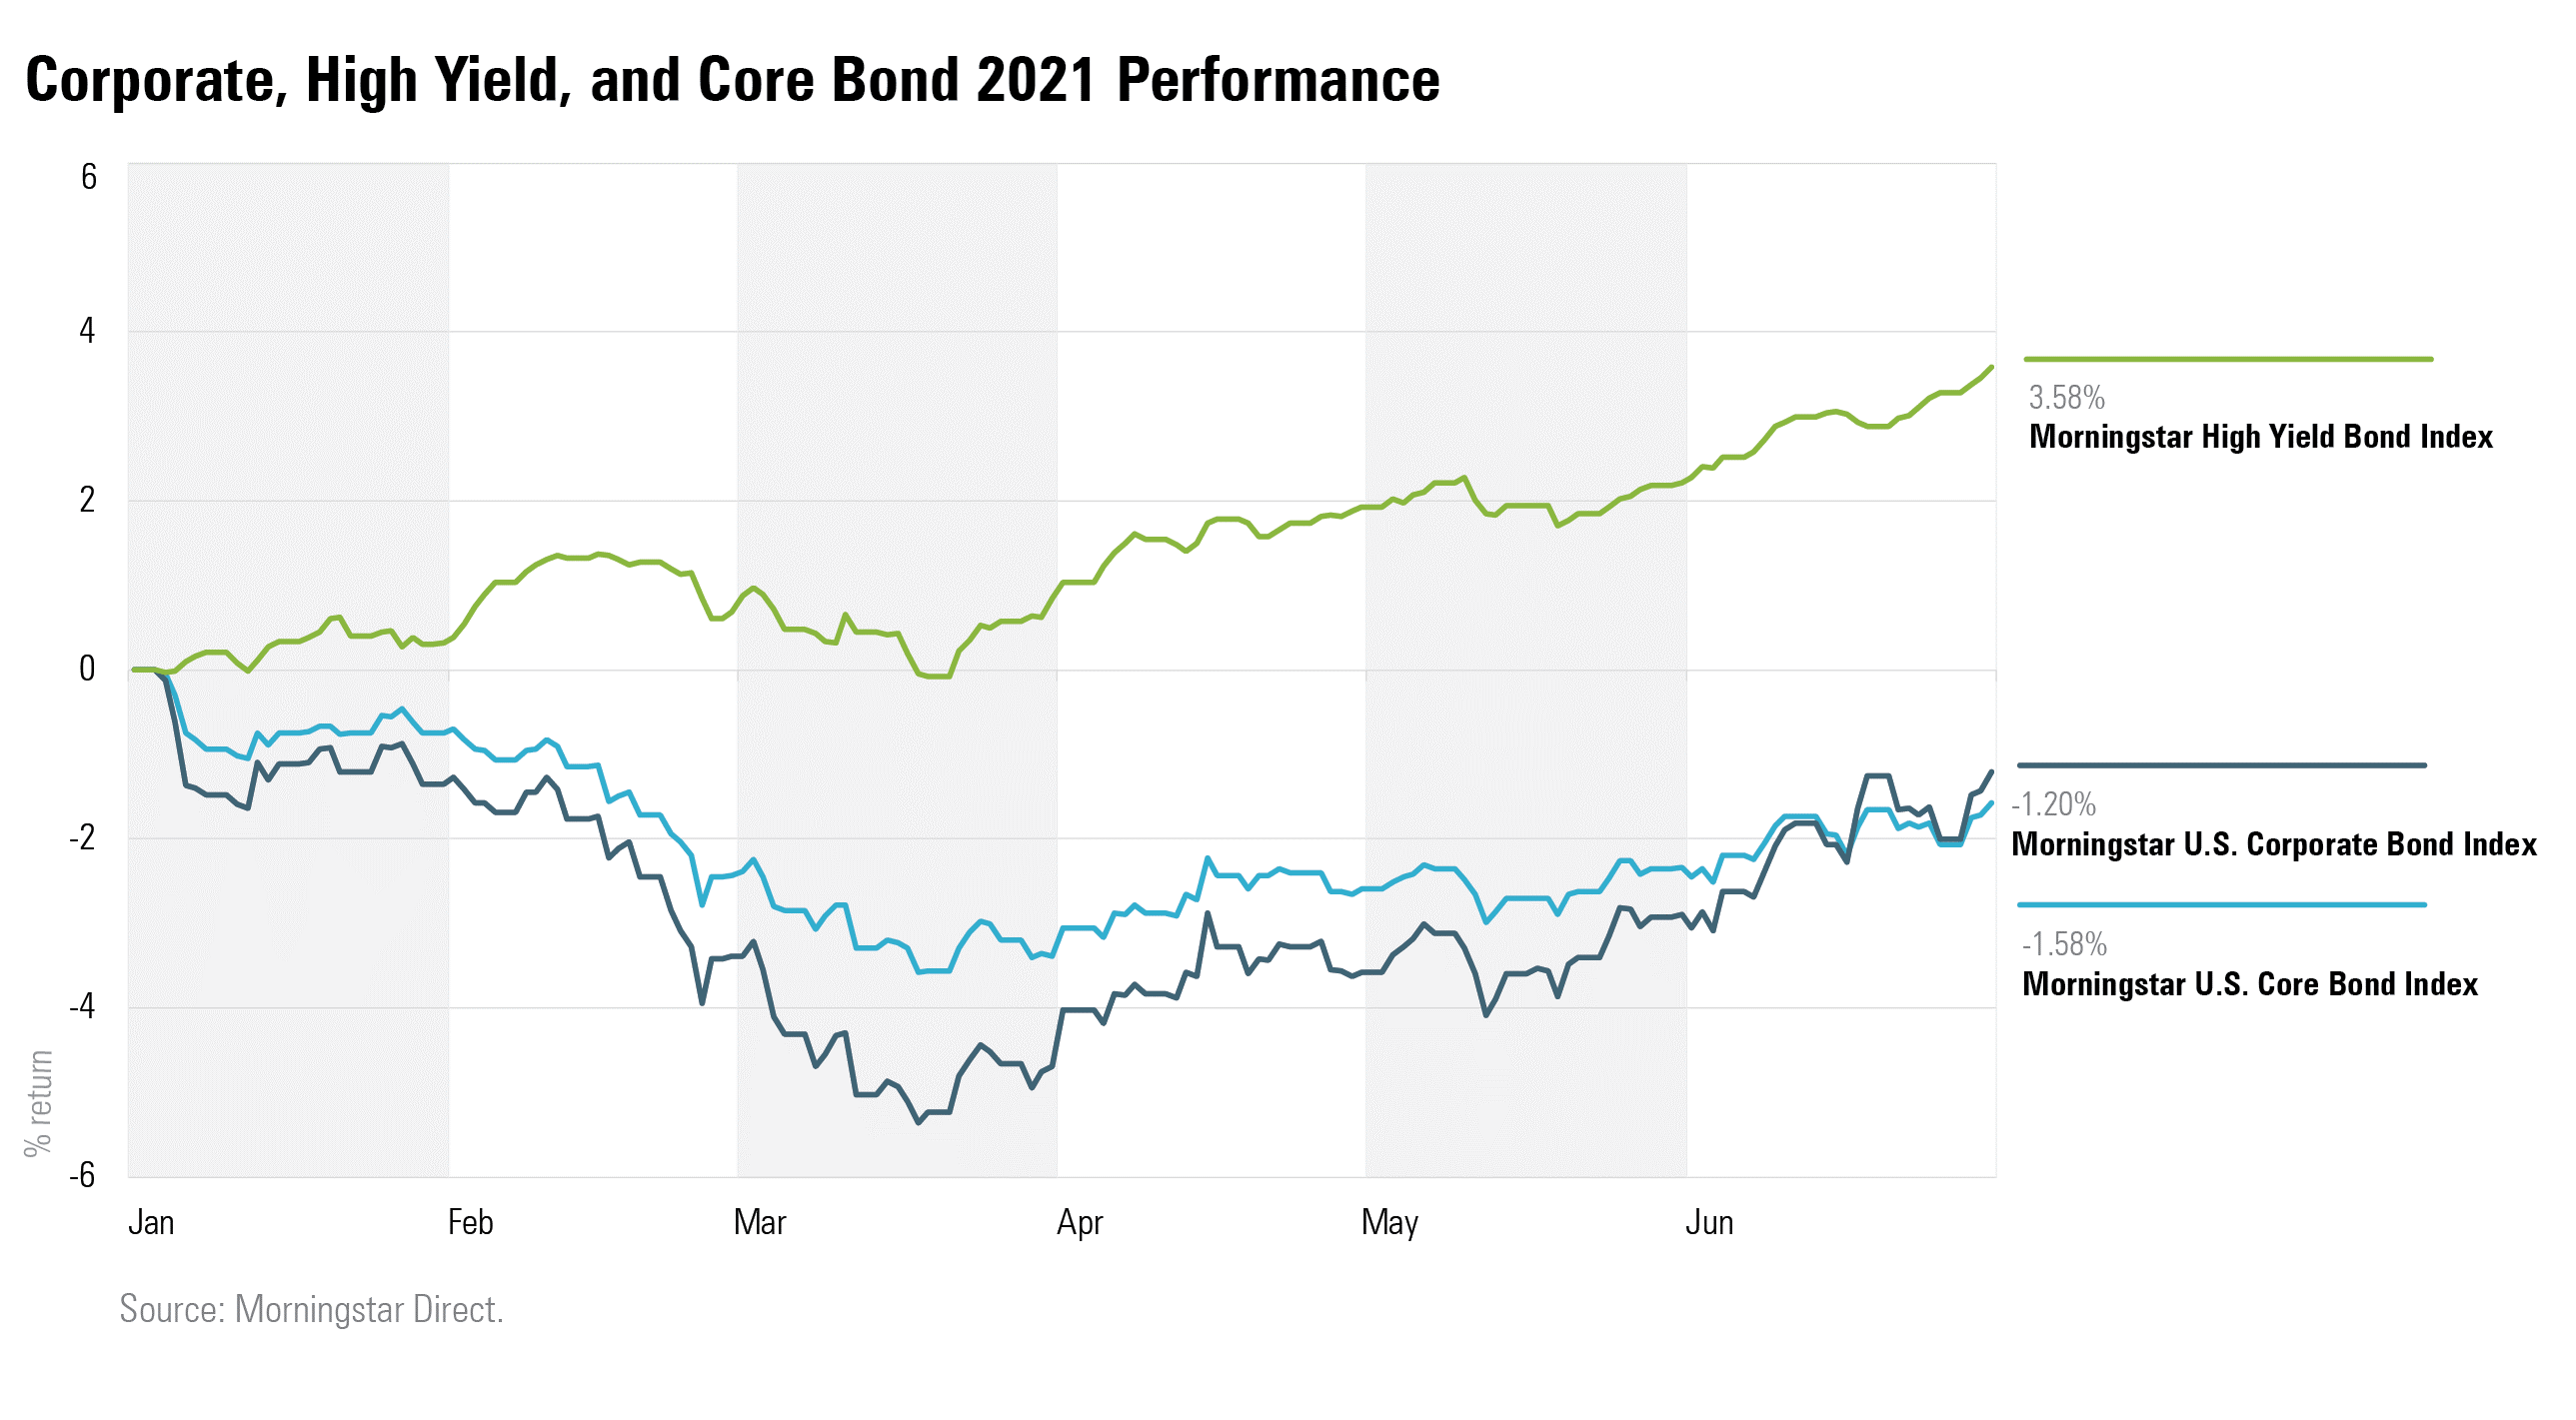 Corporate high yield and core bond 2021 performance